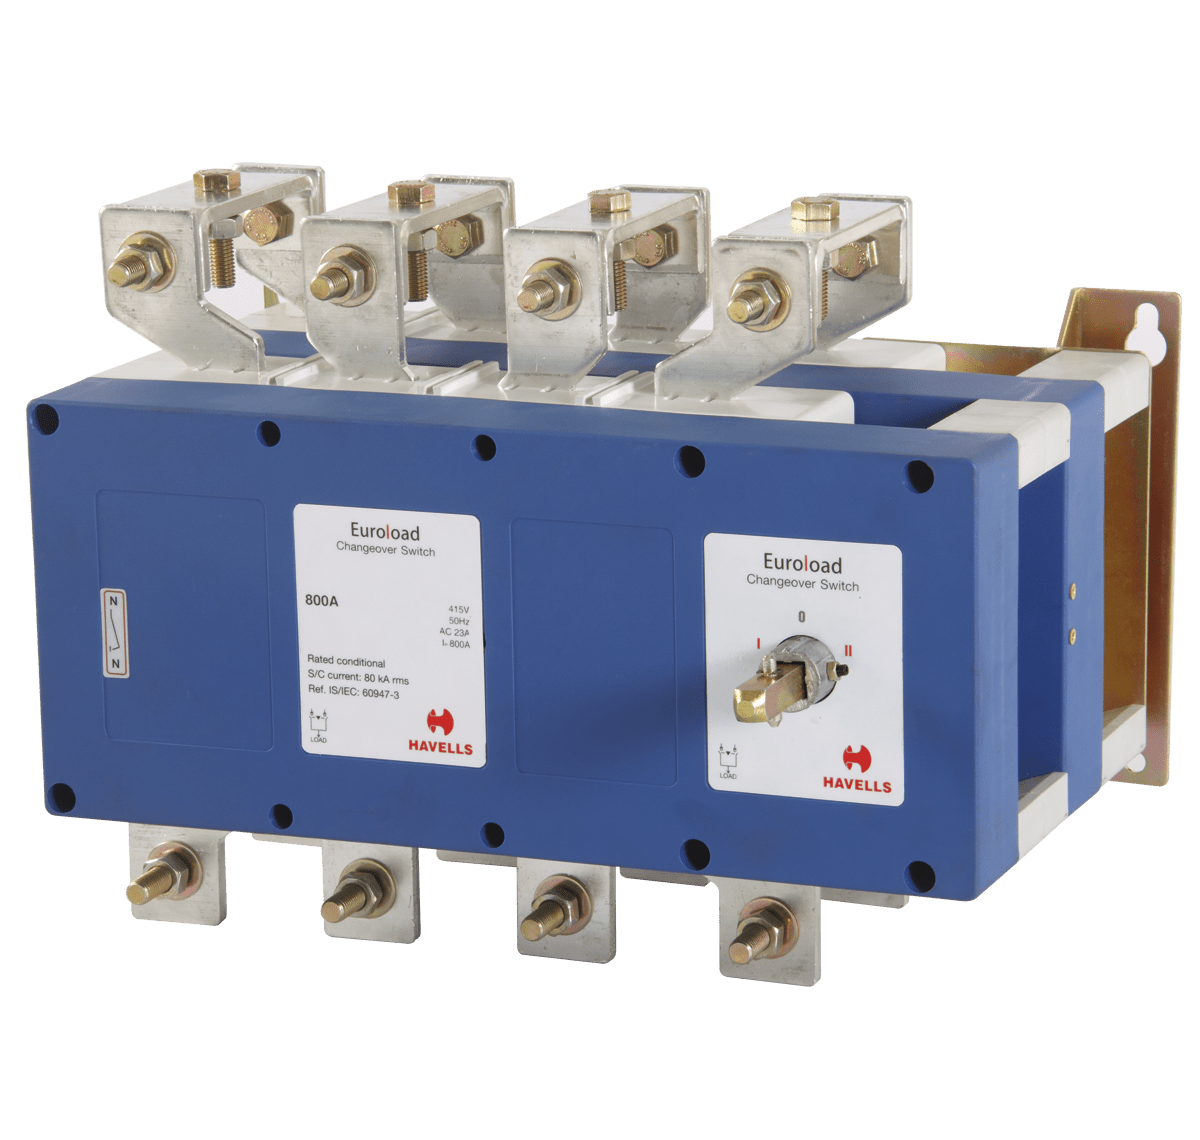 hight resolution of euroload changeover switch size 3 four pole ss enclosure